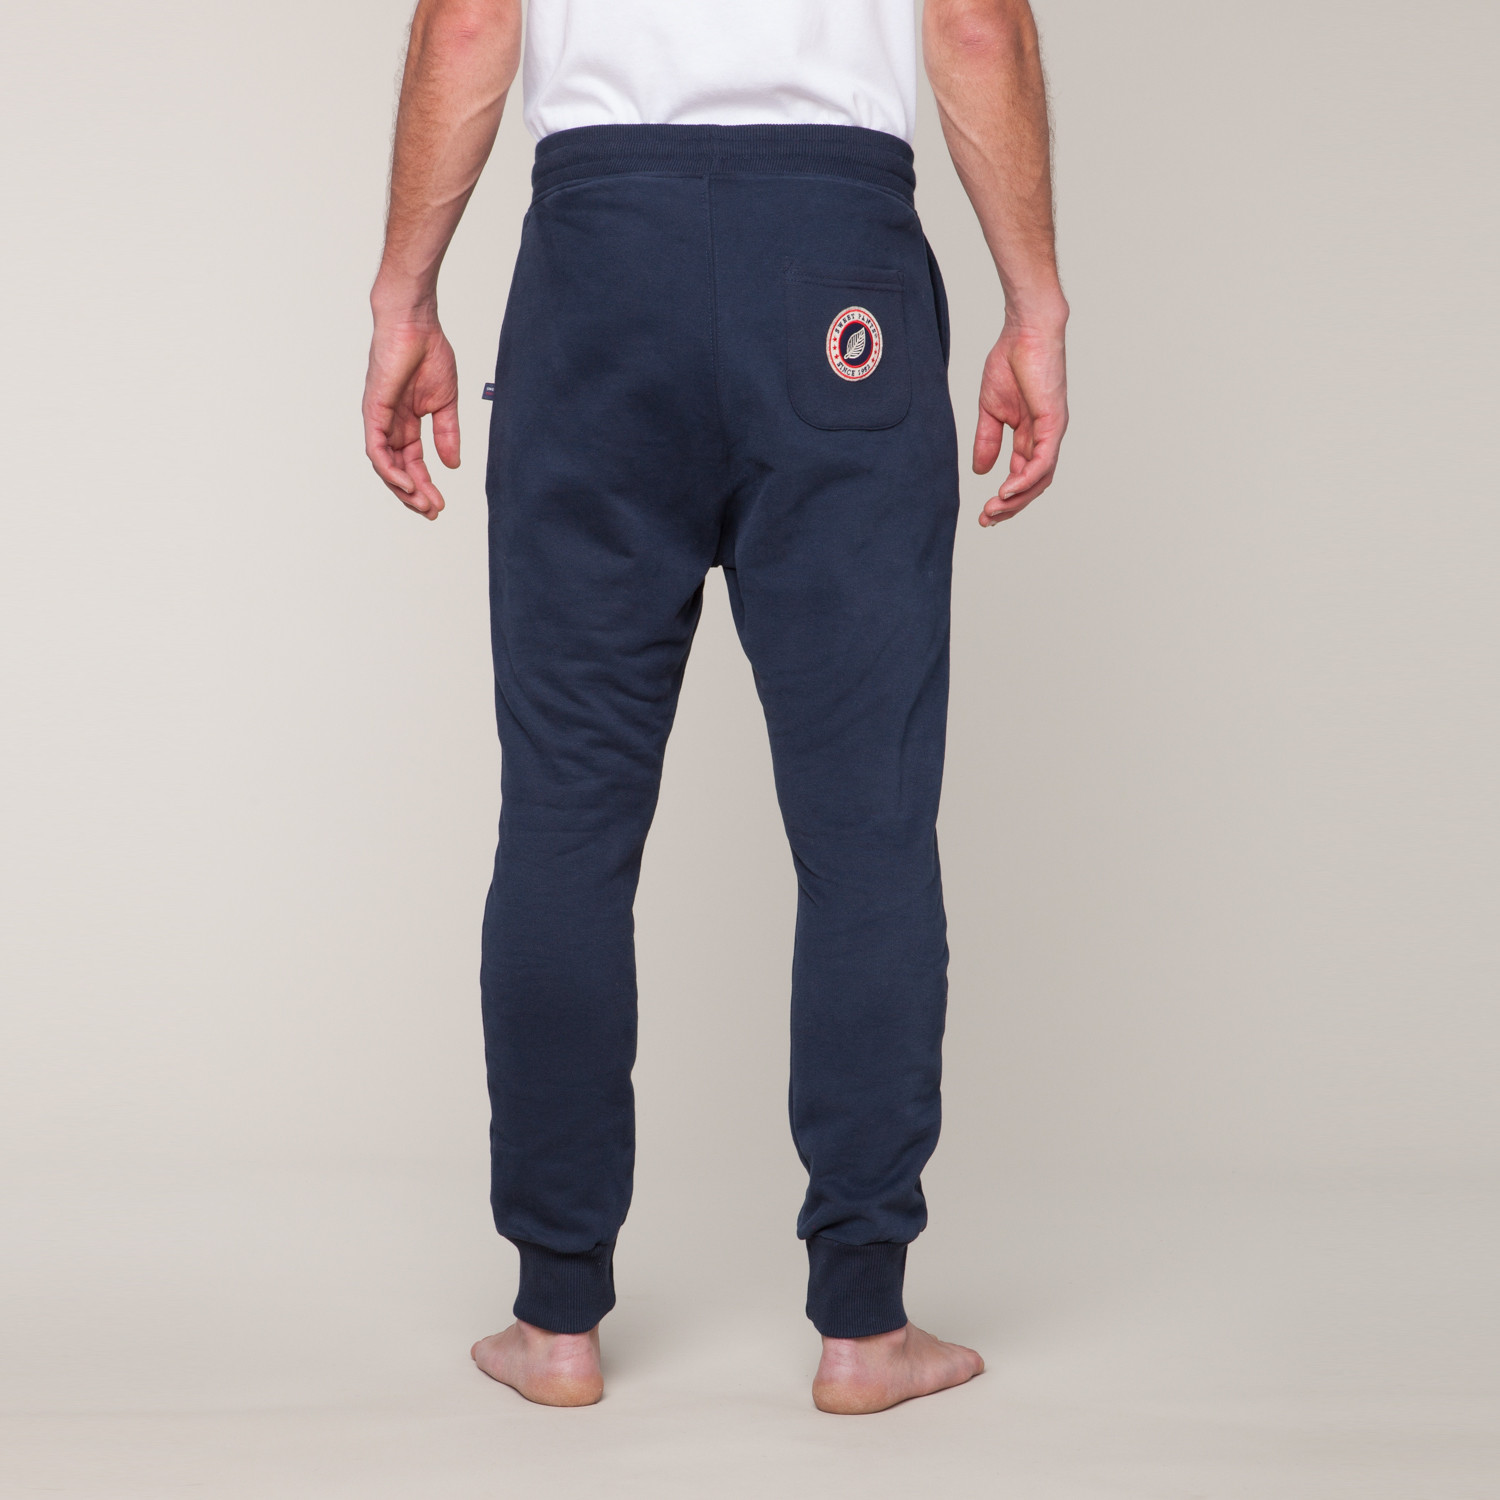 Find great deals on eBay for fitted sweat pants. Shop with confidence.